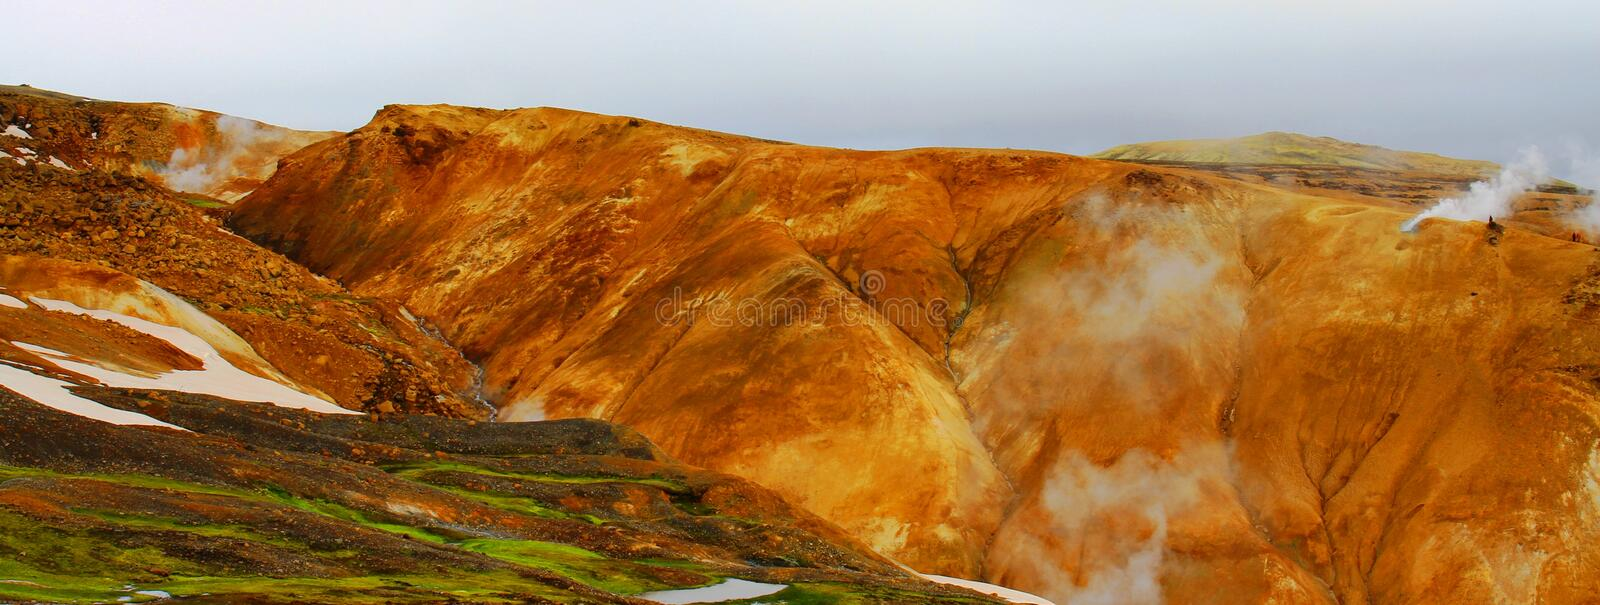 Hveradalir geothermal park, Kerlingarfjoll, Iceland stock photography